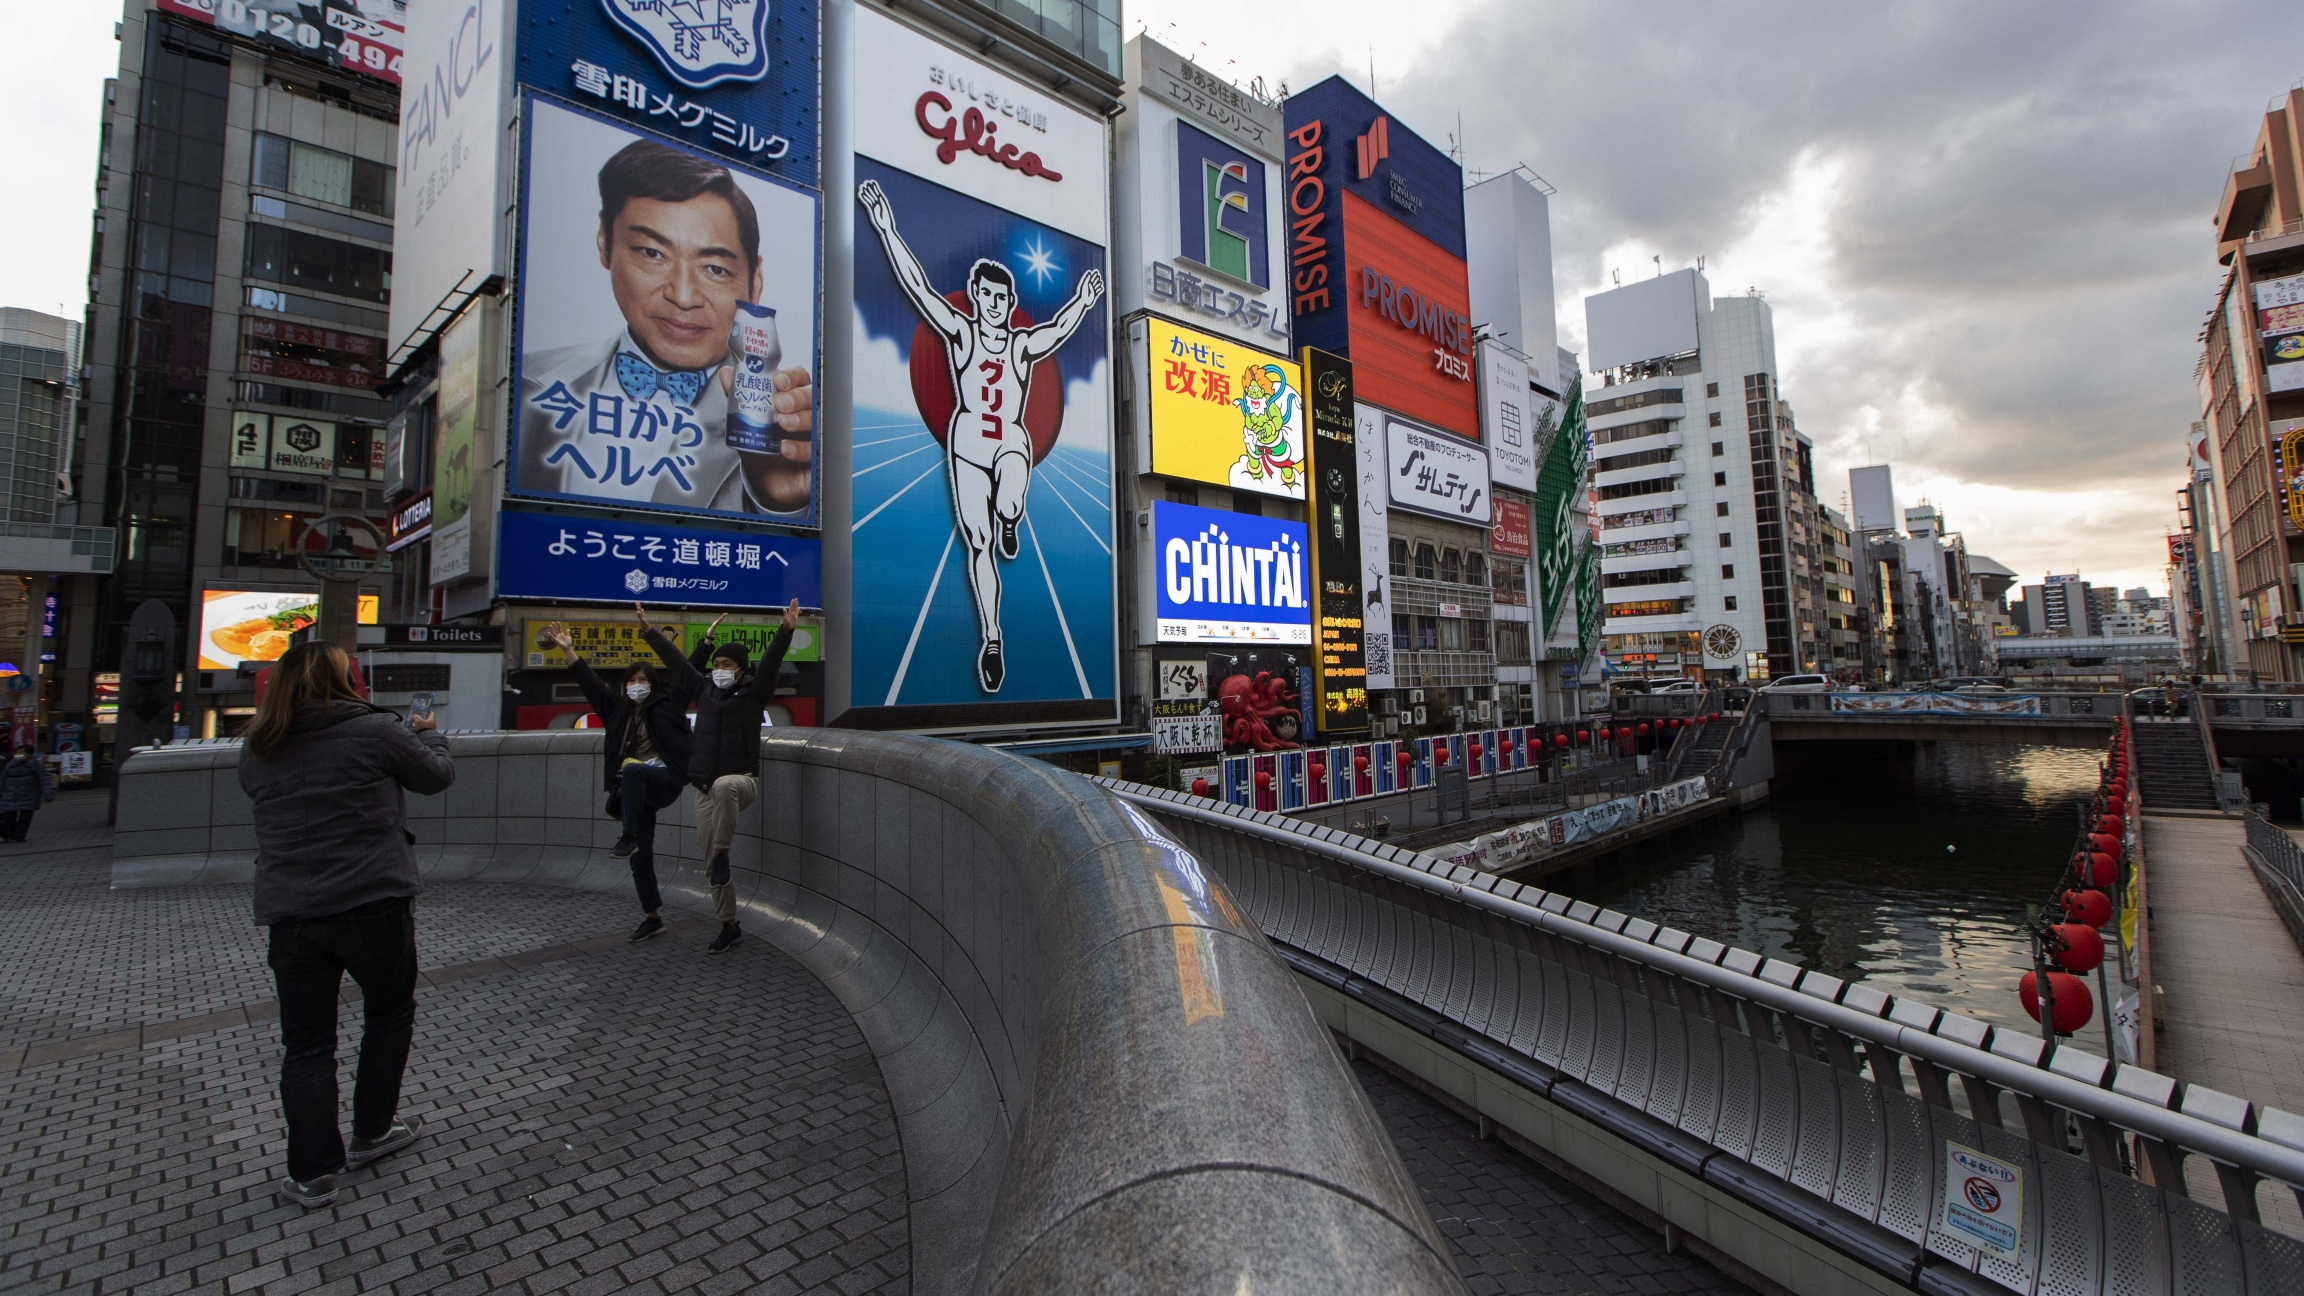 People pose for a photo, mimicking the character in an advertisement as they visit Ebisu-bashi bridge, a popular tourist spot in Osaka, western Japan, Nov. 30, 2020.